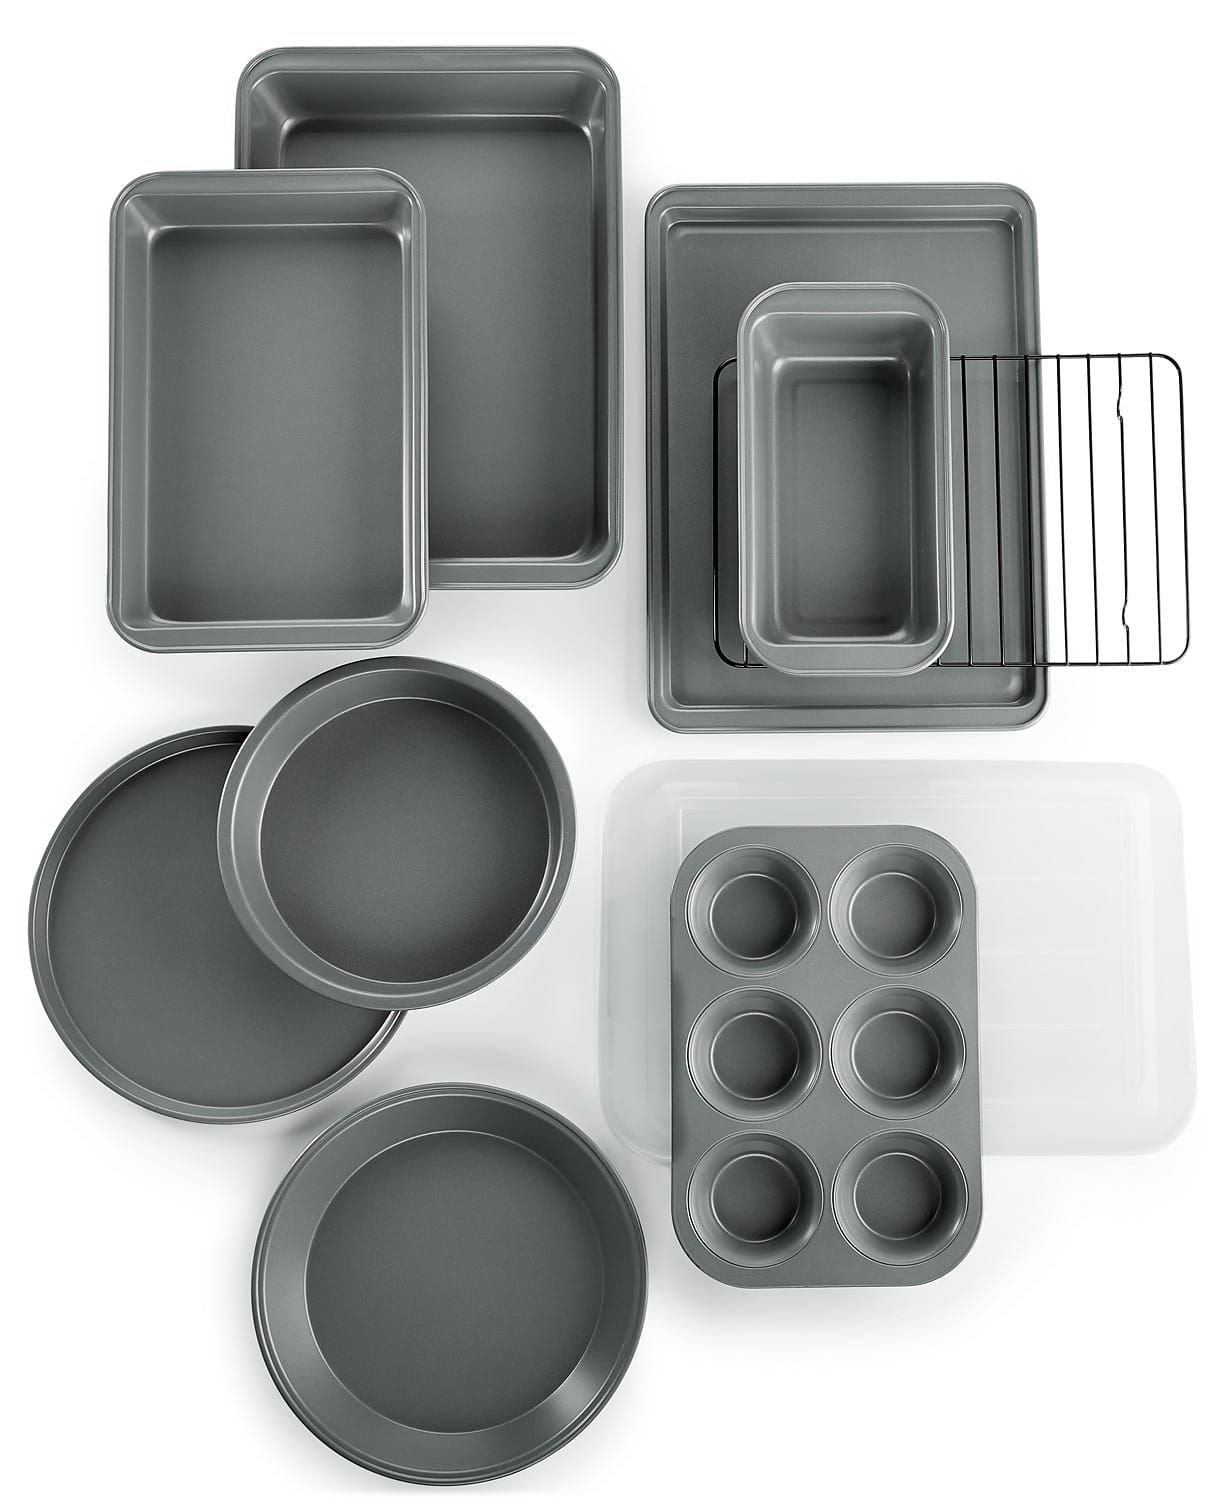 10-Piece Martha Stewart Essentials Non-Stick Bakeware Set for $19.99 at Macy's (Pick-up or Free SH on $25+)